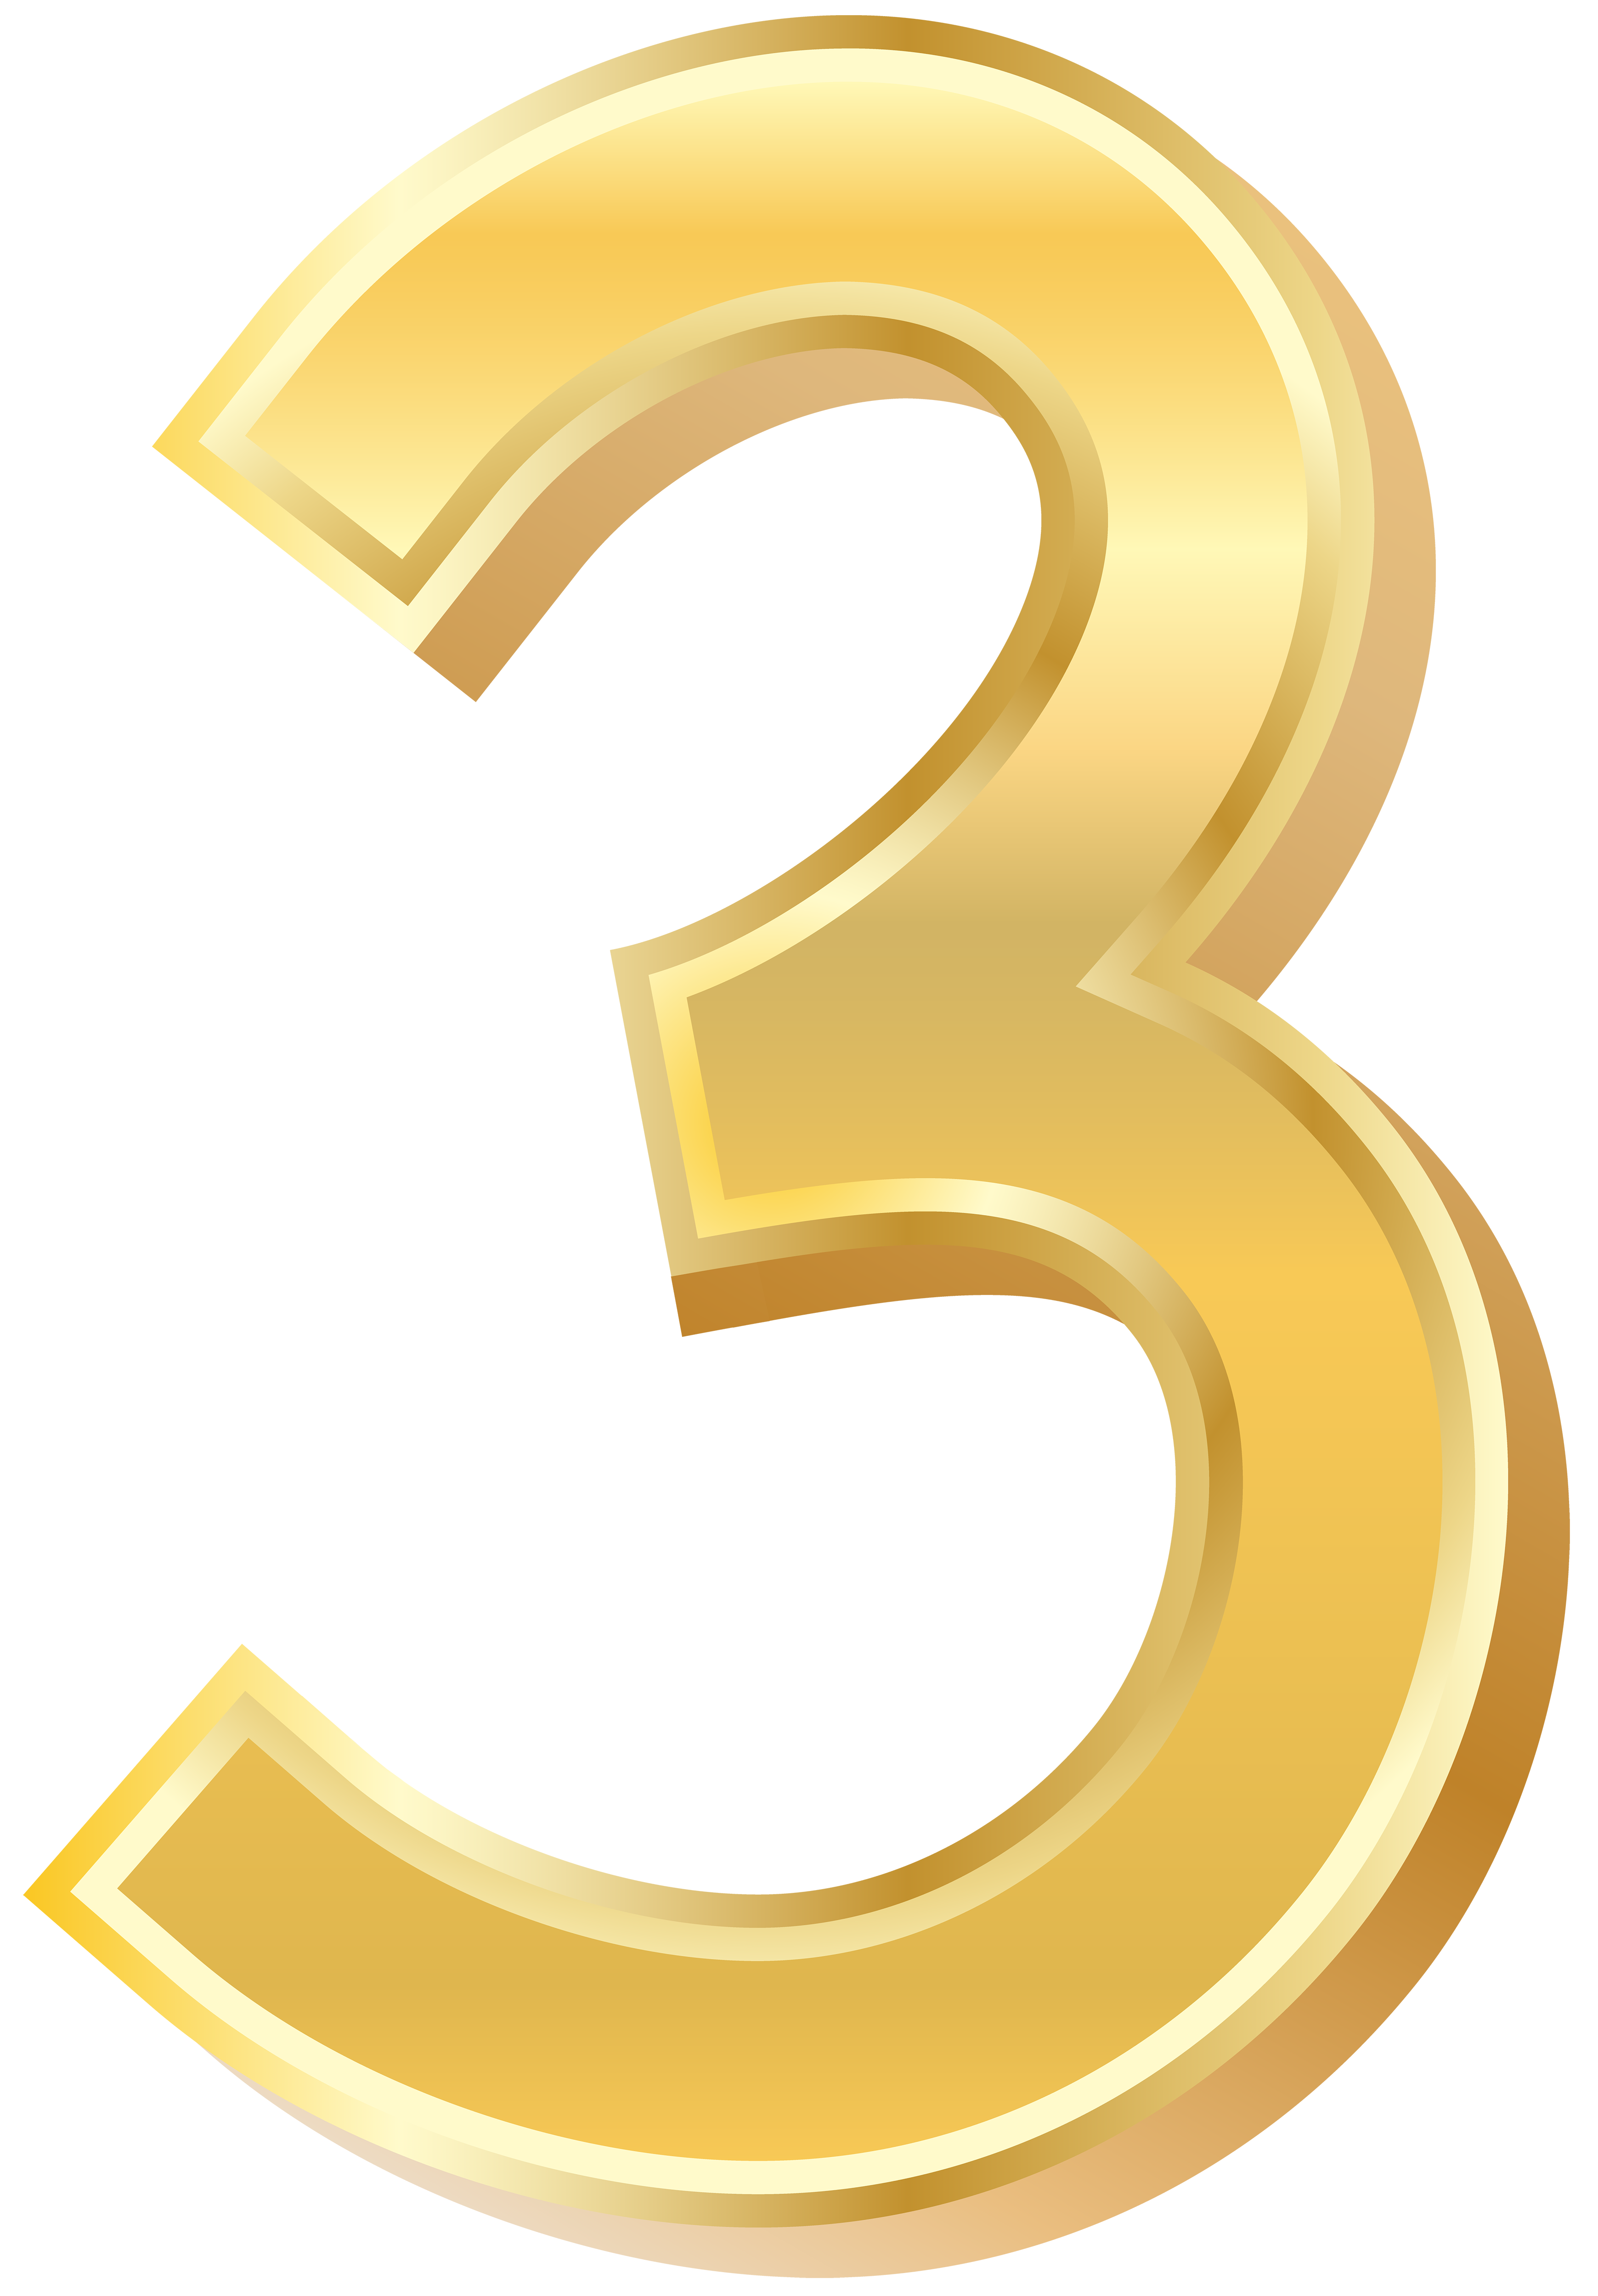 Gold style three png. Number 3 clipart golden